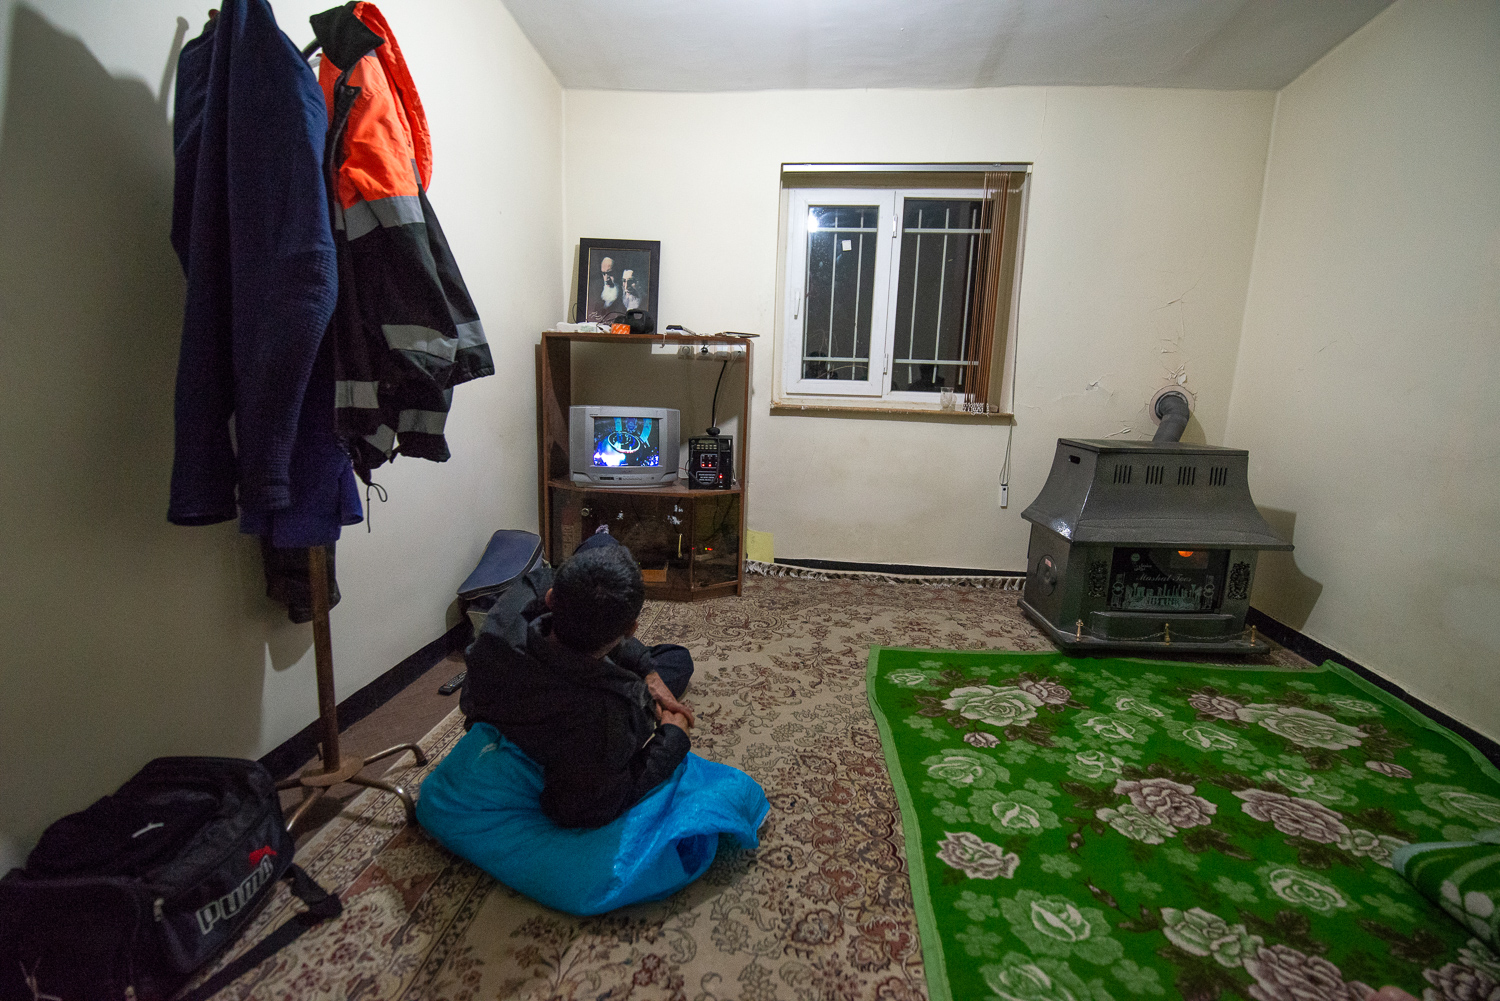 Morteza is more fresh, watches Iranian national TV instead!